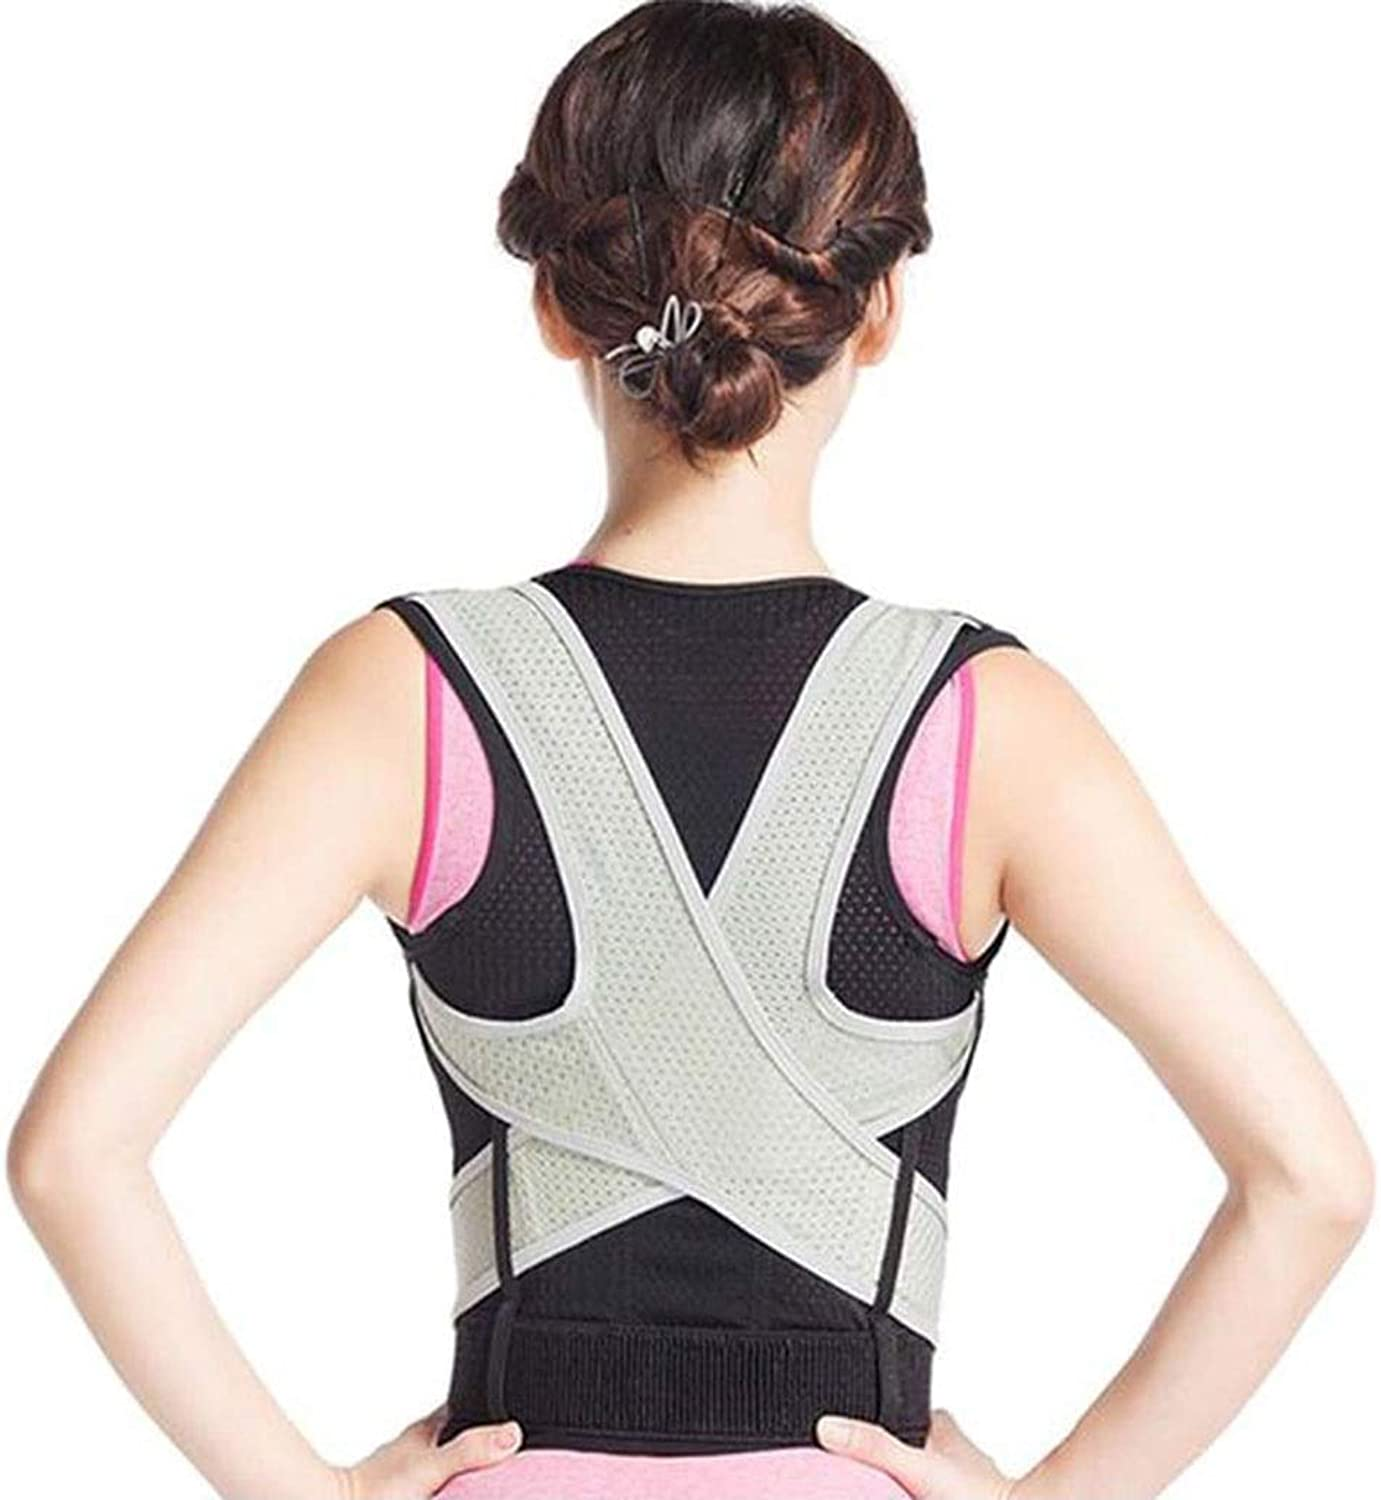 Men and Women with Back Orthotics to Reduce Lower Back Pain and Upper Back Pain, Comfort and Caution